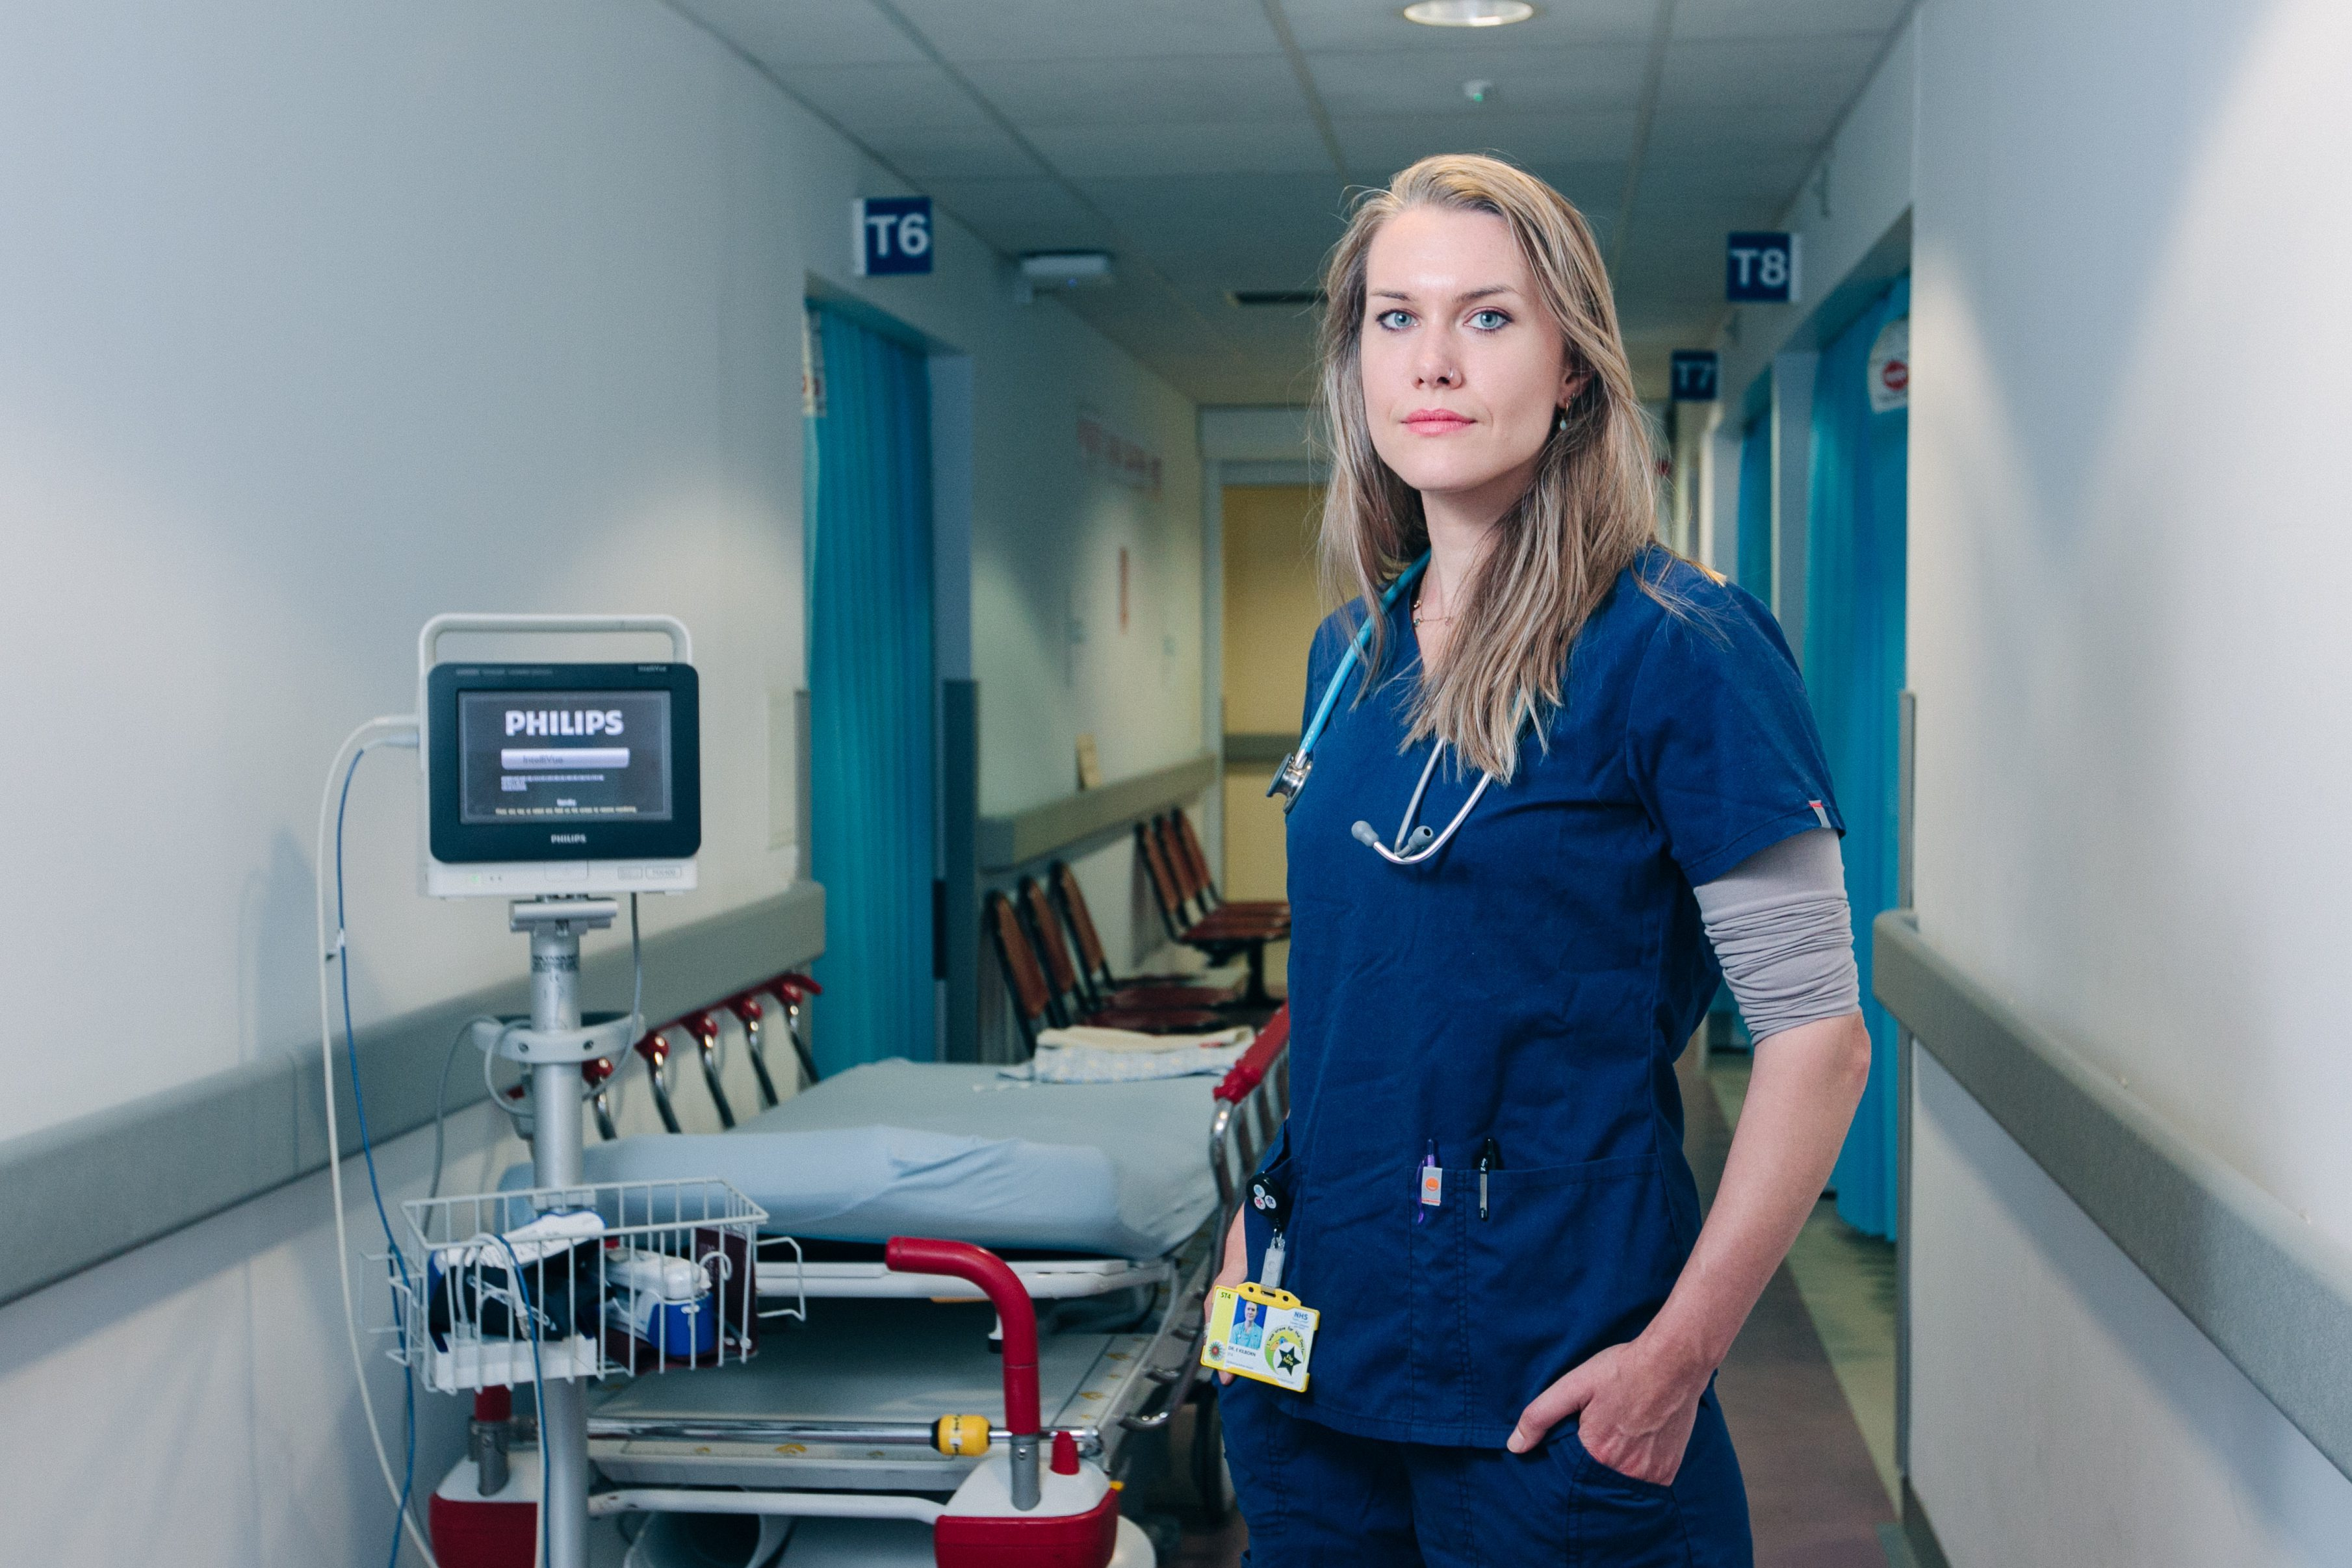 Dr Erin Kilborn back at Glasgow Royal Infirmary A&E unit after stint in Syria